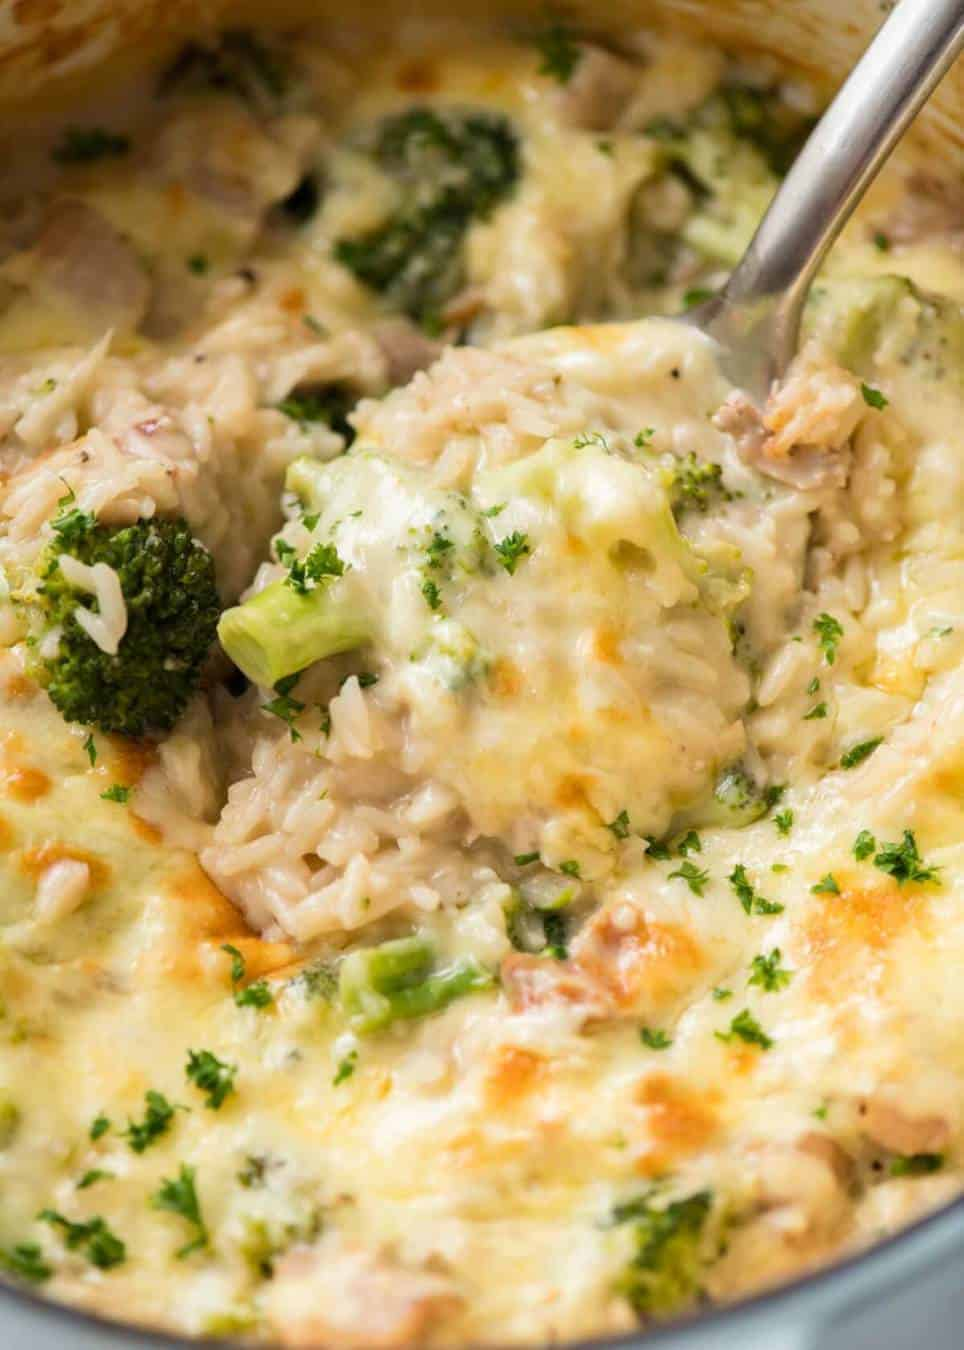 Made-from-scratch creamy, cheesy Chicken Broccoli Rice Casserole made in ONE POT! Tastes like risotto, but so much more straight forward to make. www.recipetineats.com